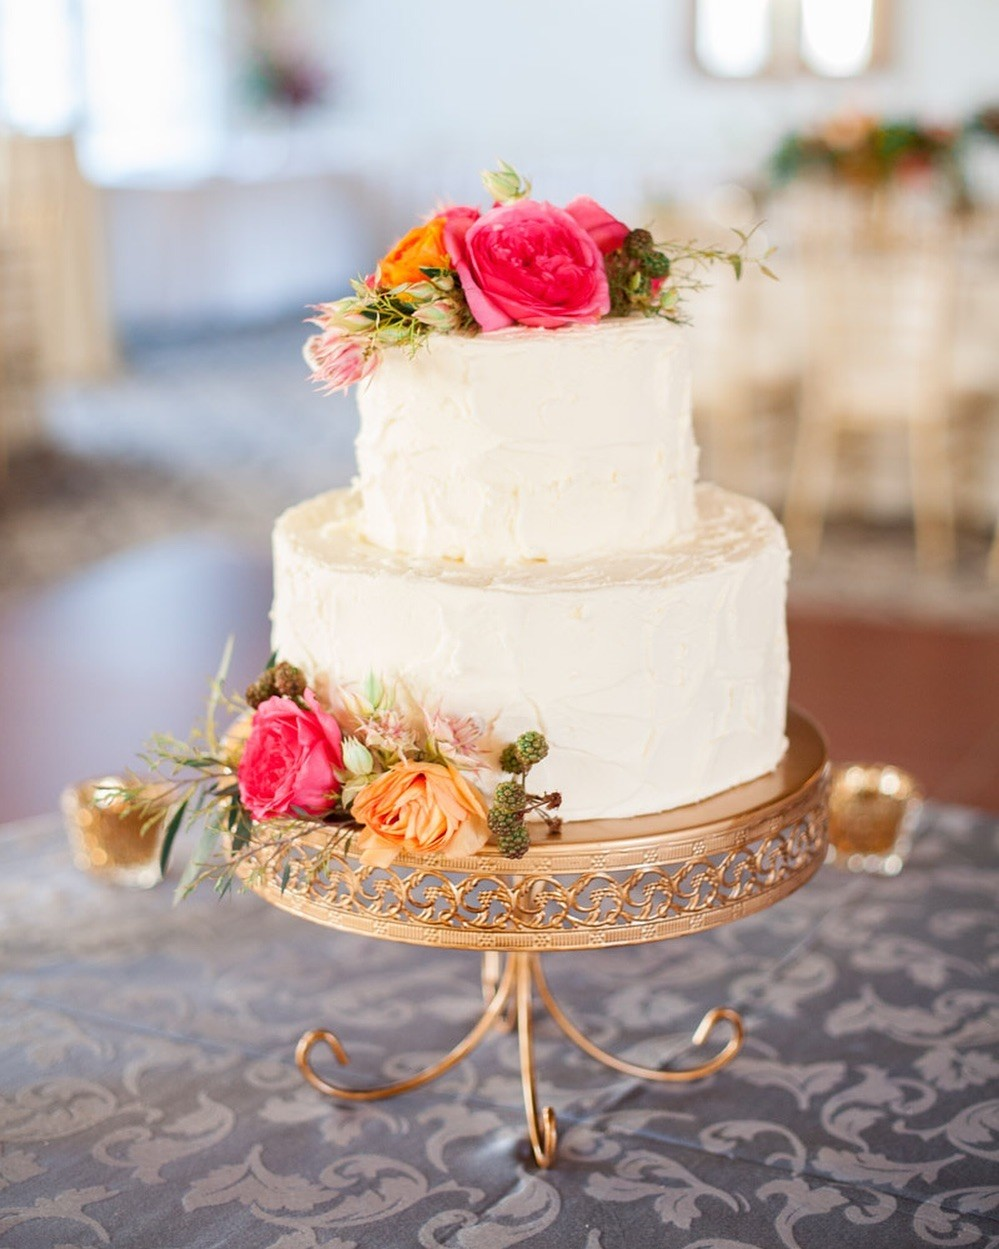 Elegance! Wedding Cake by @cecilias_cakes on an